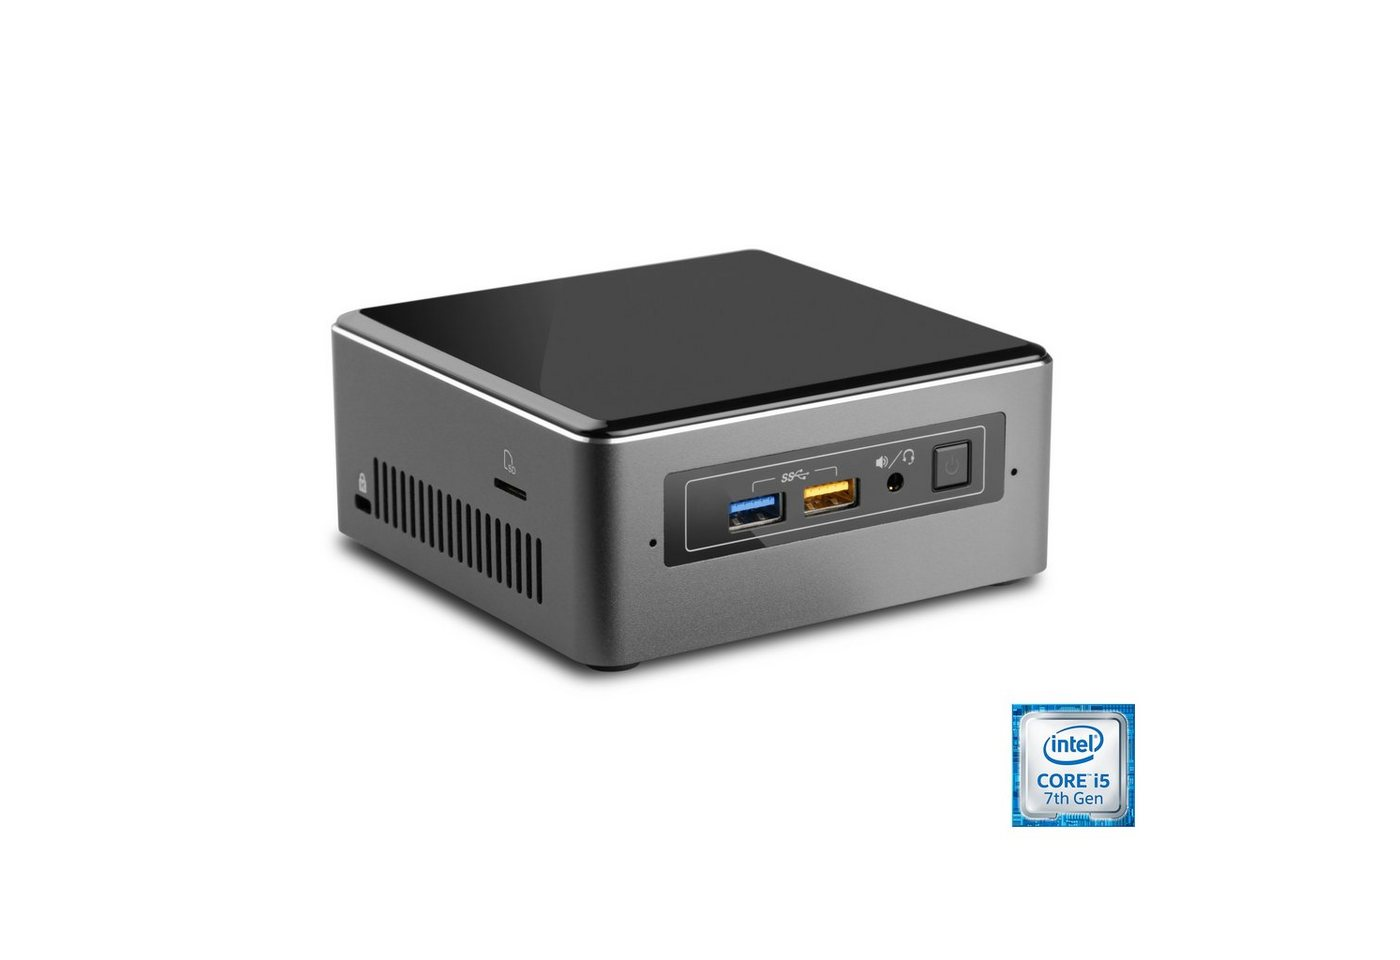 csl-mini-pc-core-i5-7260u-intel-hd-640-8gb-ddr4-500gb-ssd-intel-nuc